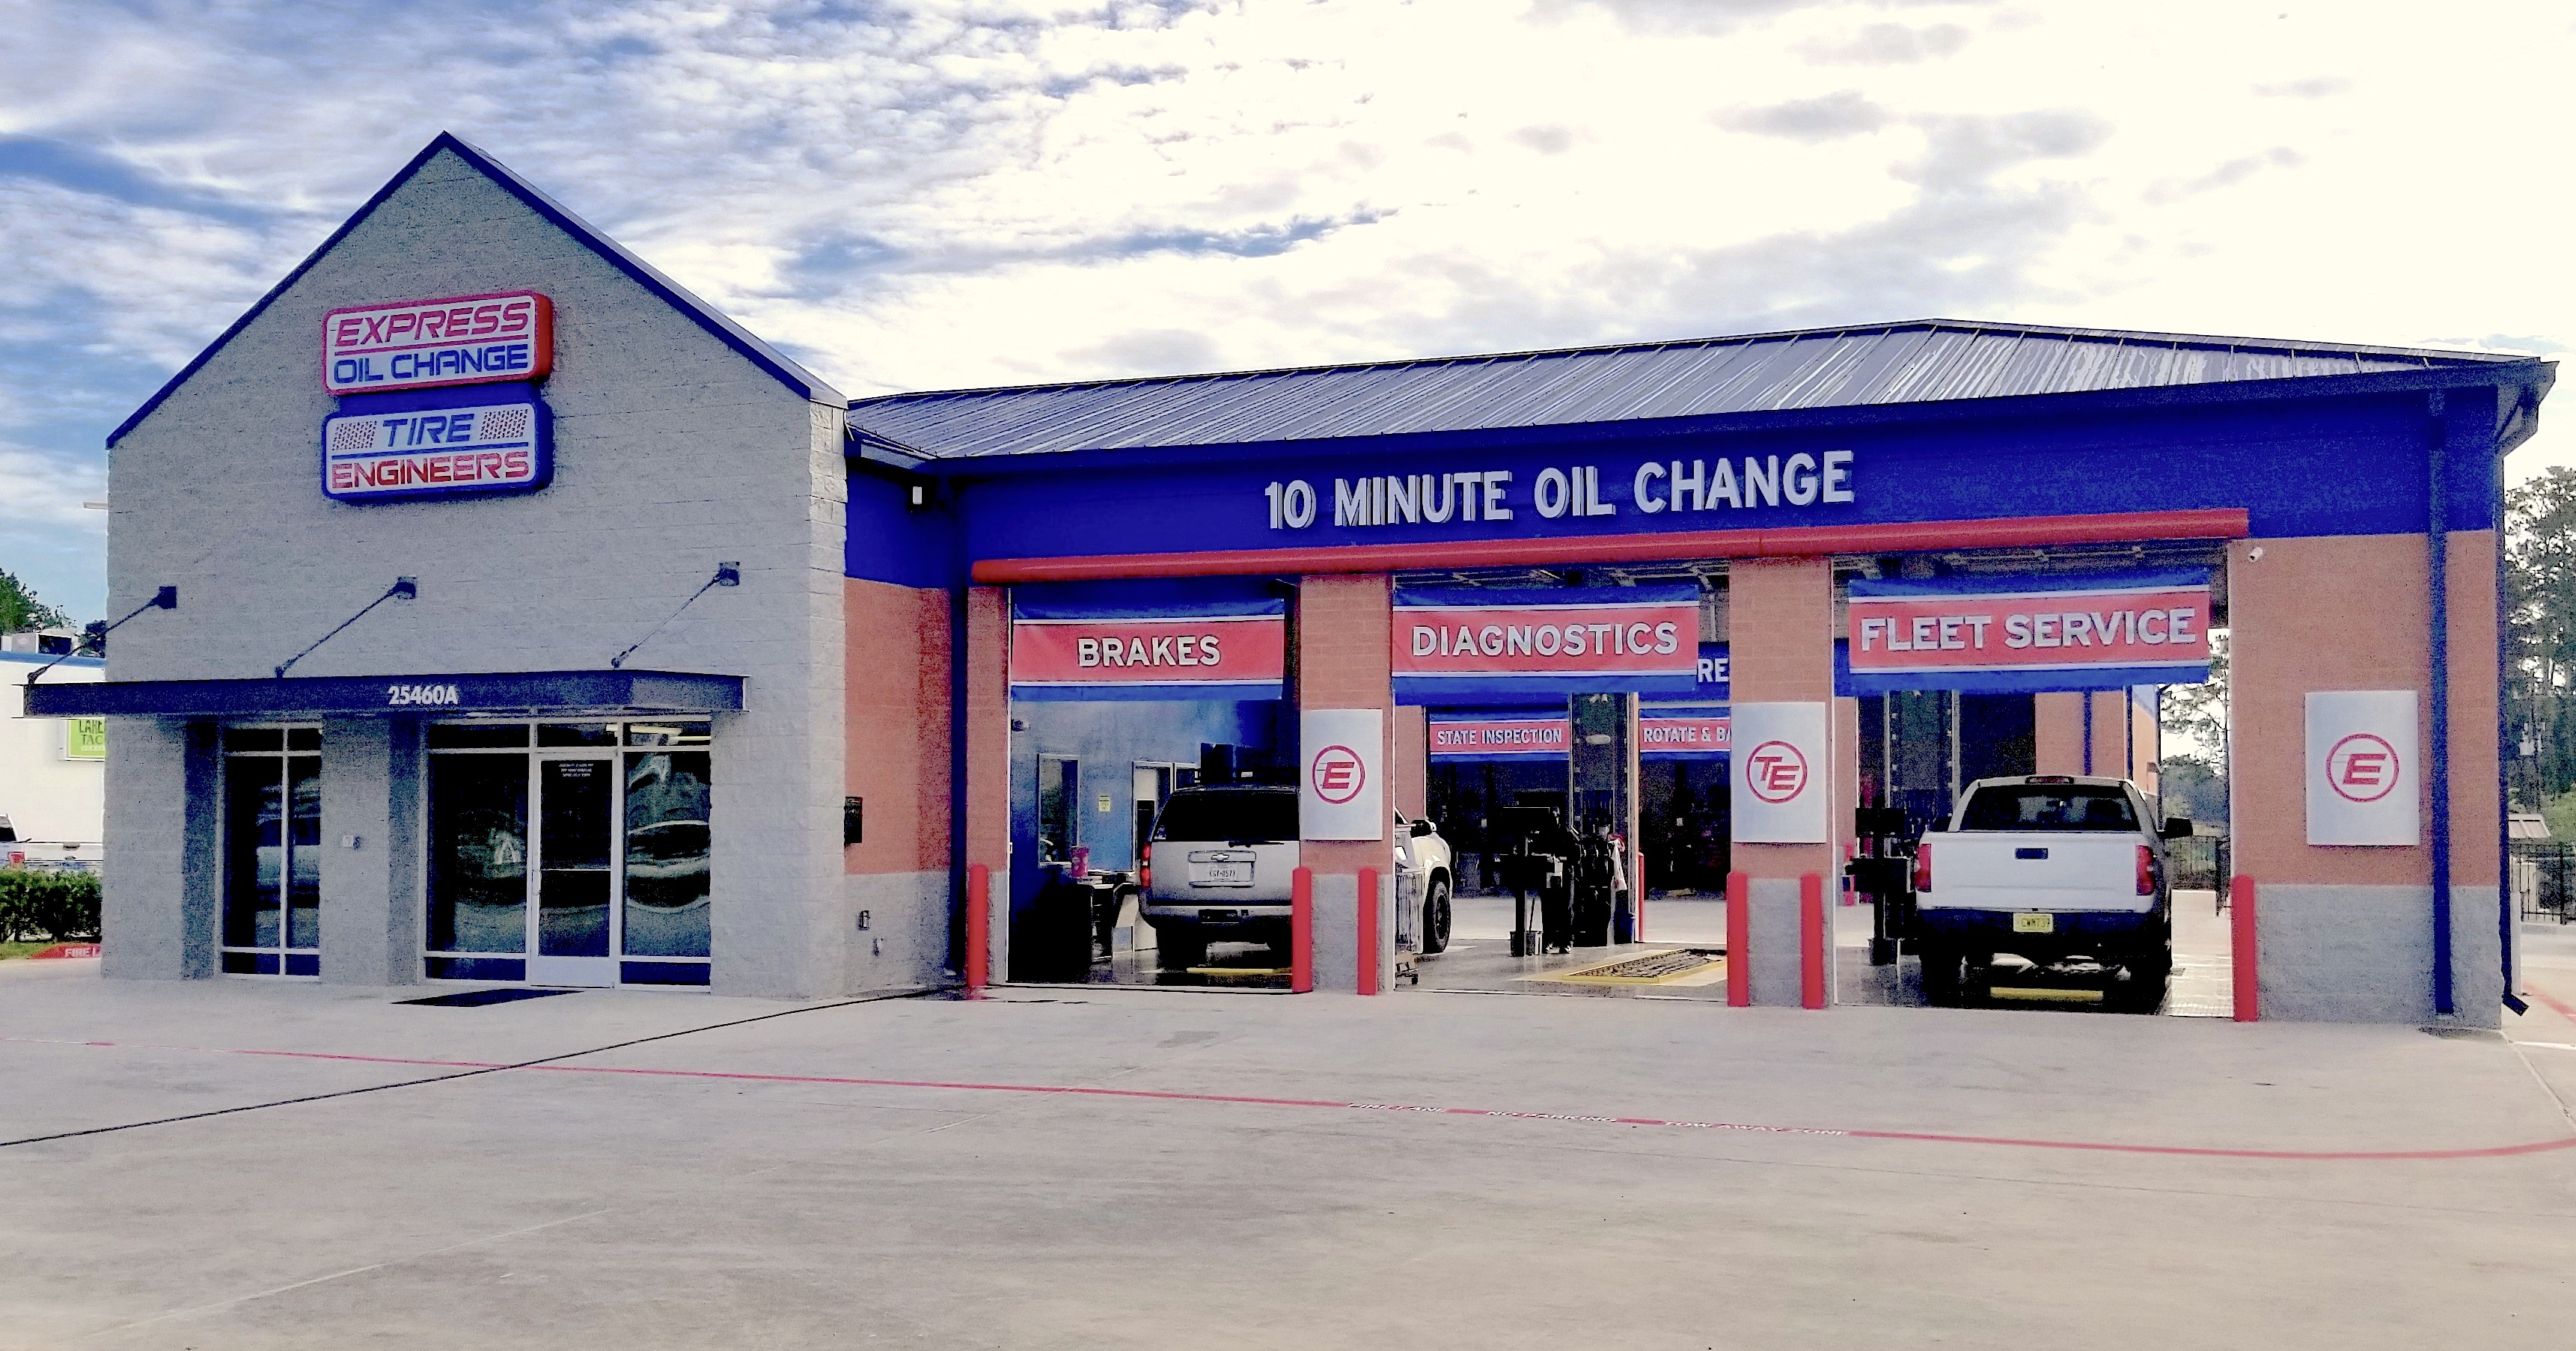 Express Oil Change & Tire Engineers Tomball, TX - London Town store